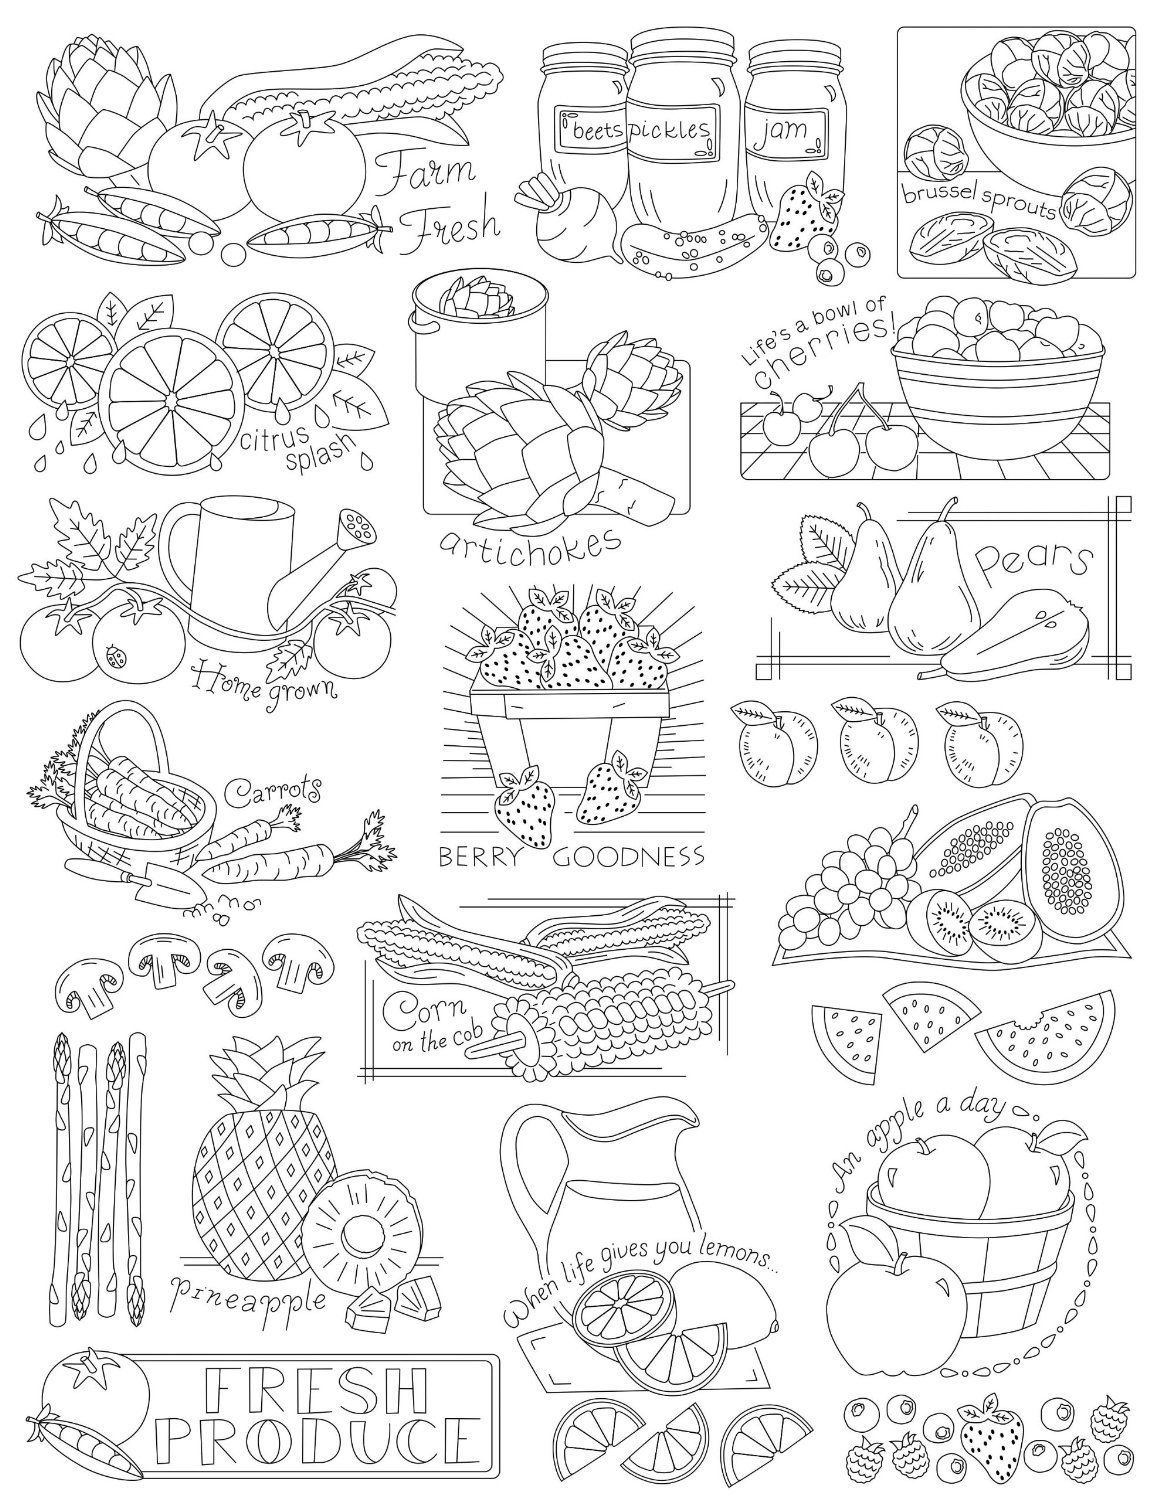 Amazon.com: Aunt Martha's Fruits and Veggies Embroidery